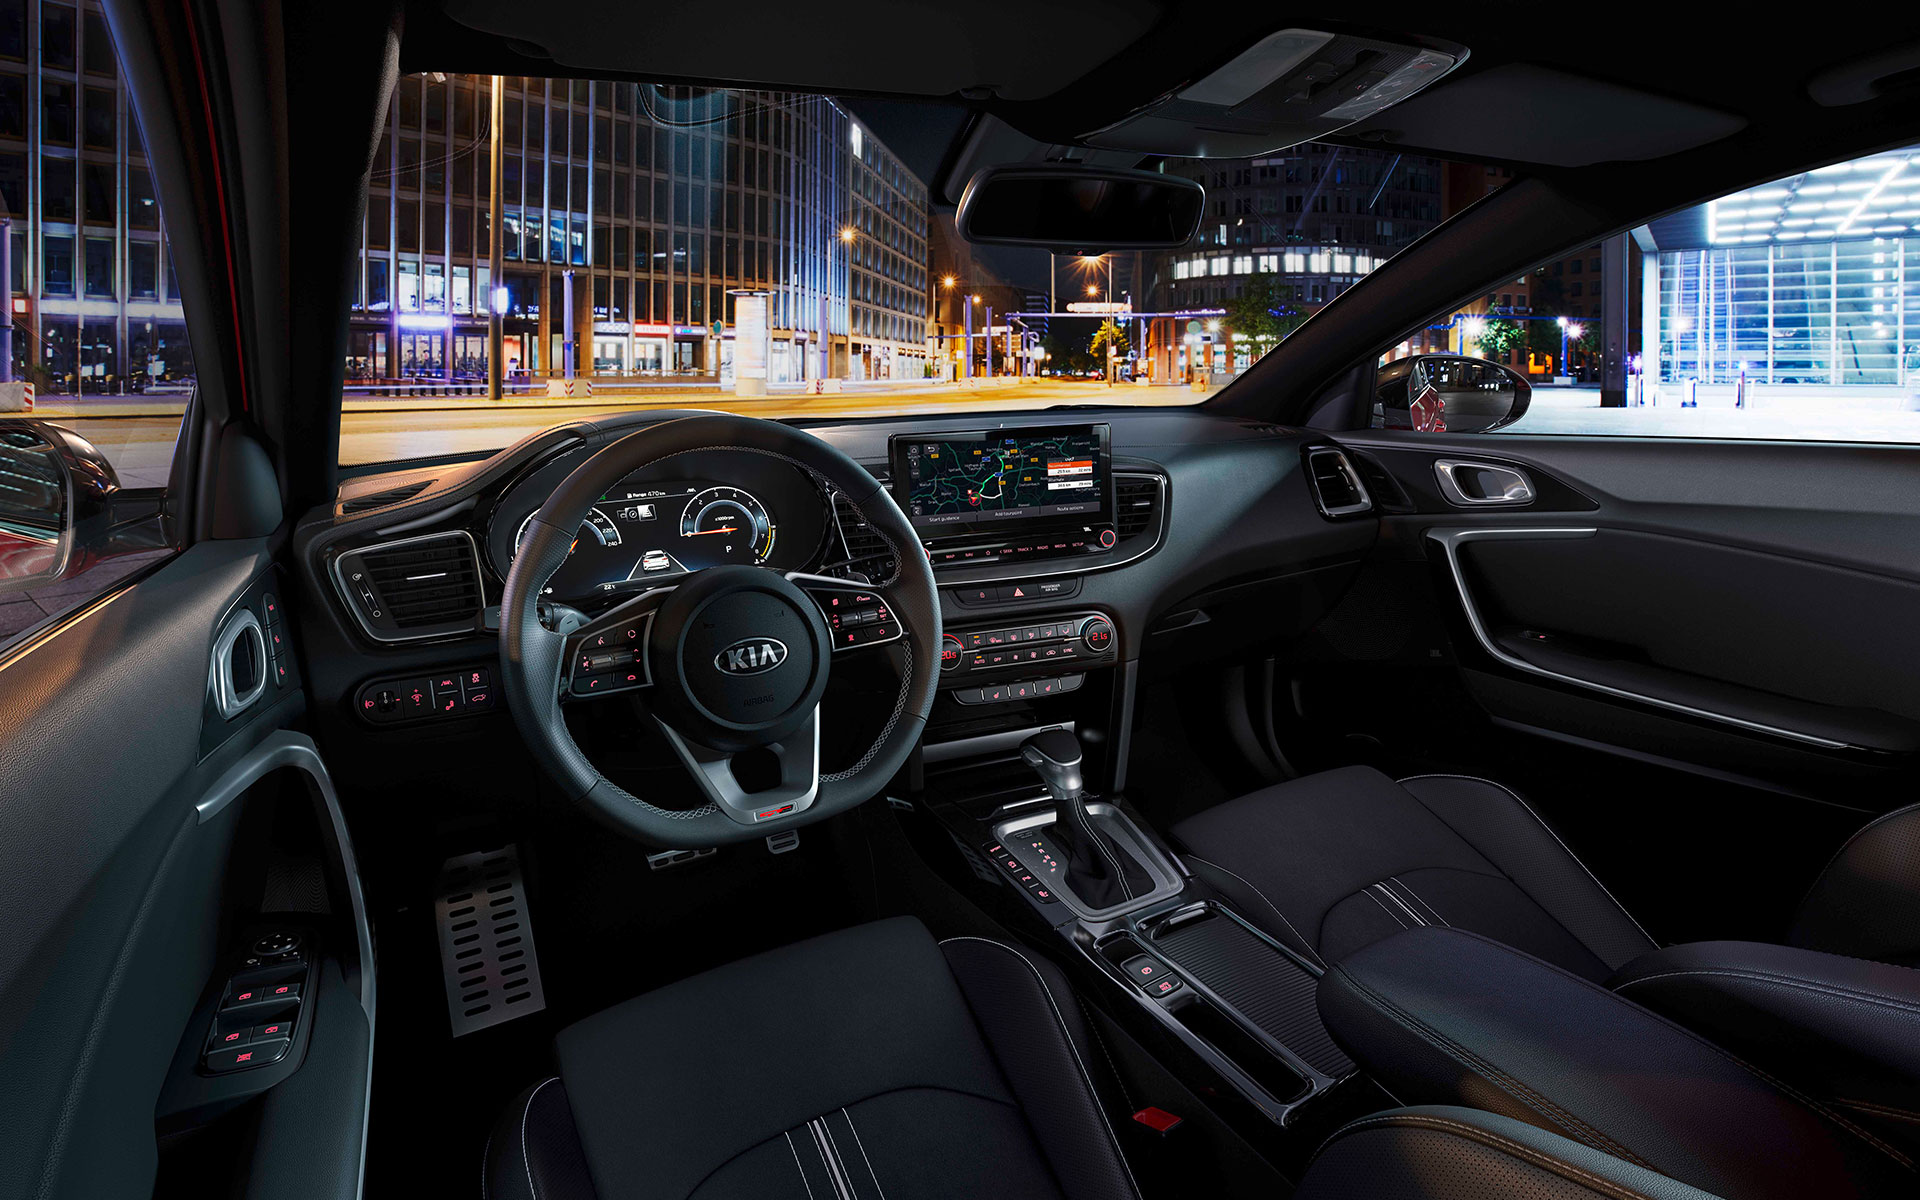 Kia ProCeed comfortable interior